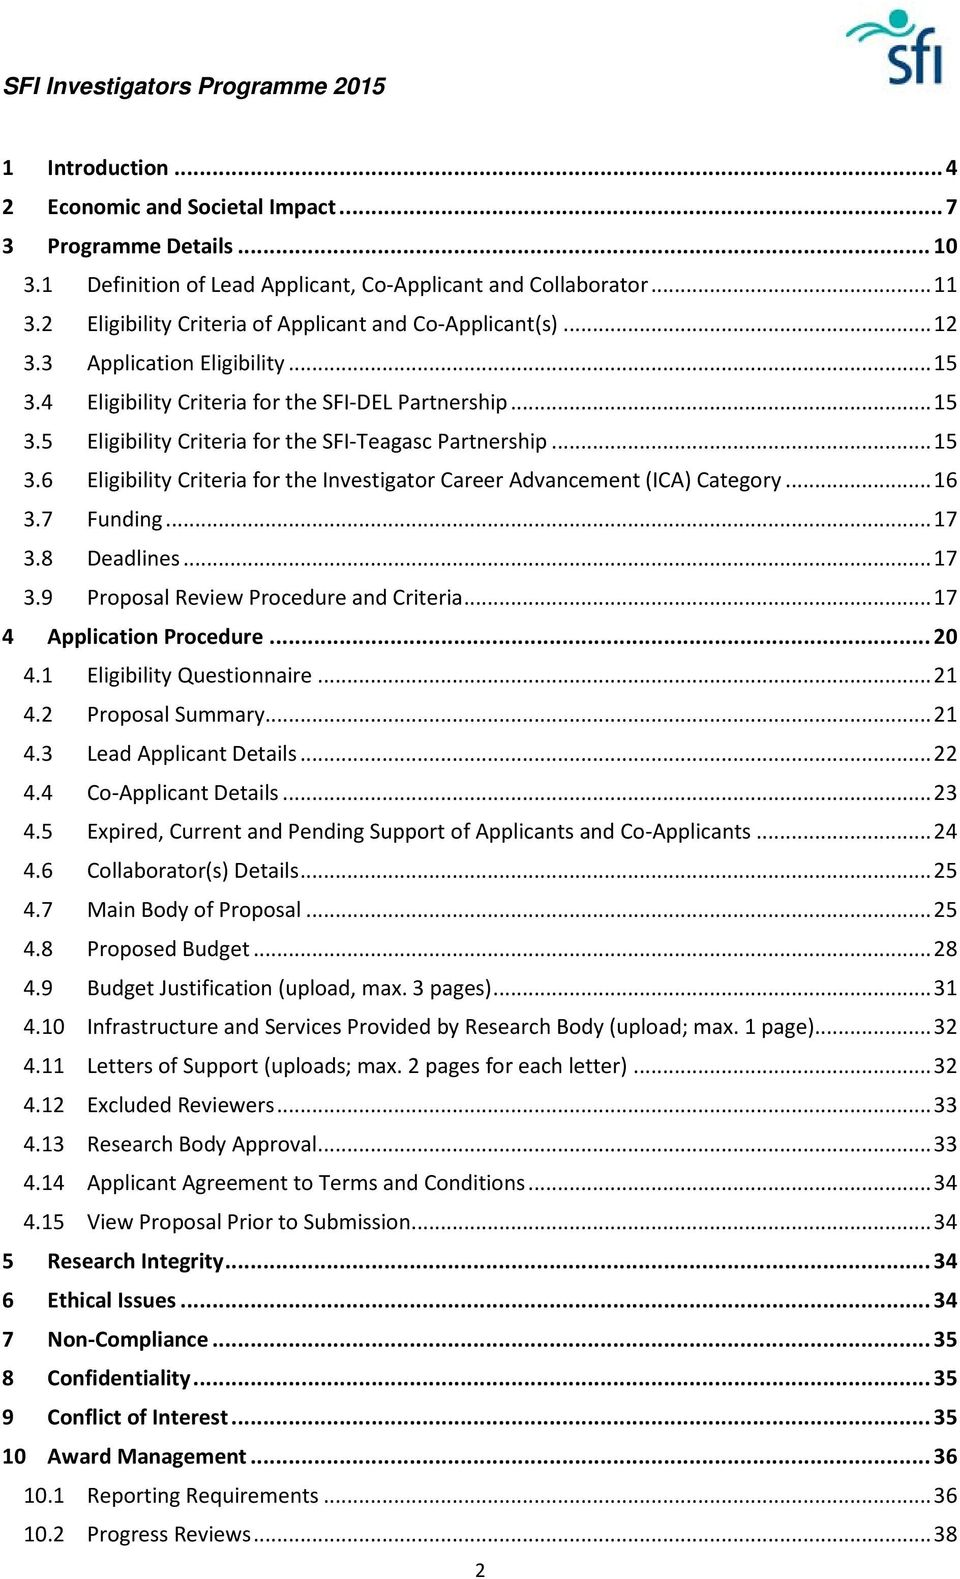 .. 15 3.6 Eligibility Criteria for the Investigator Career Advancement (ICA) Category... 16 3.7 Funding... 17 3.8 Deadlines... 17 3.9 Proposal Review Procedure and Criteria.